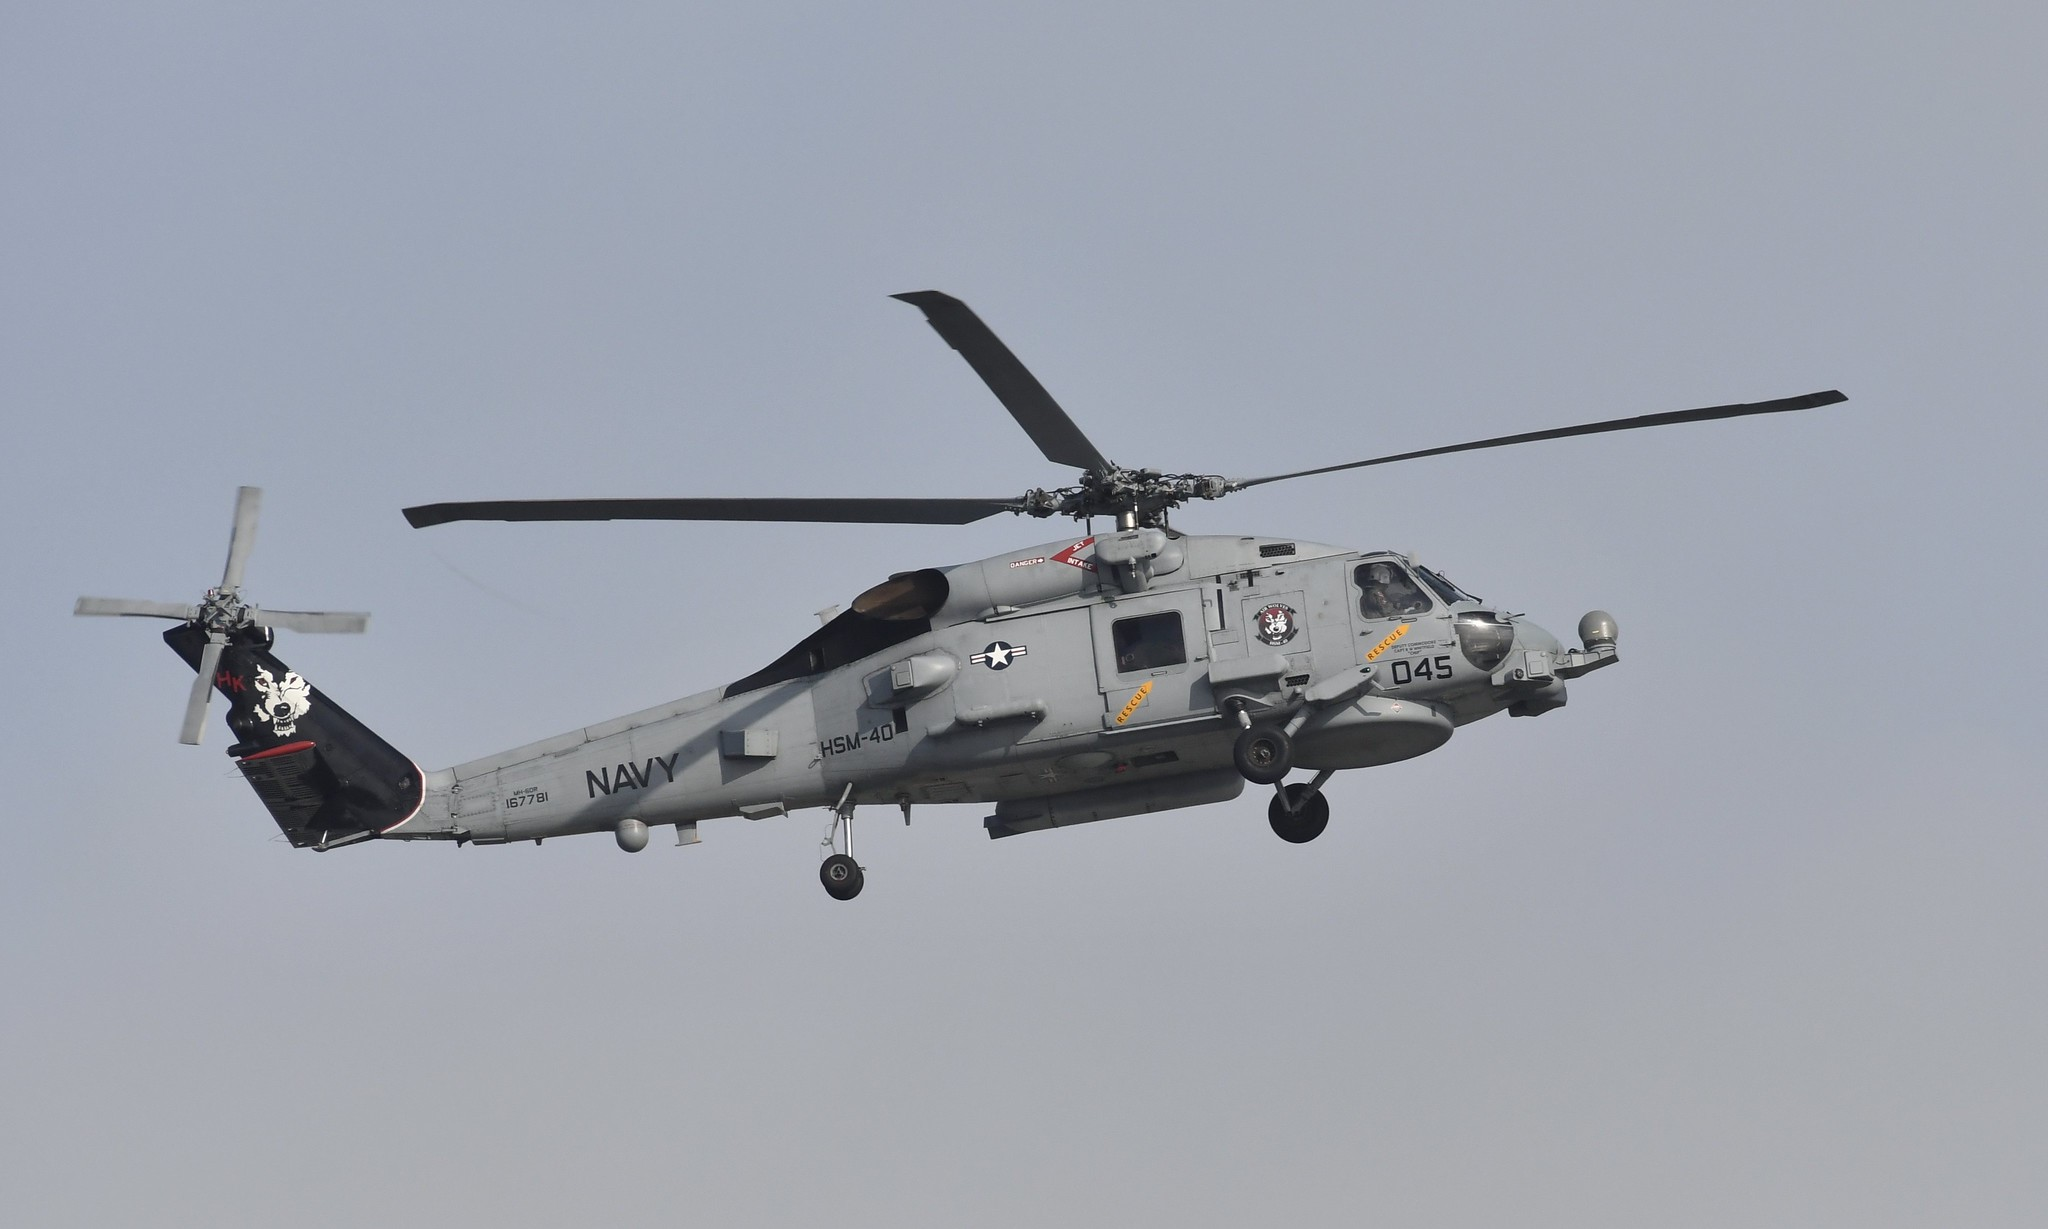 NAS Mayport - (Black Tail) USN Helicopter